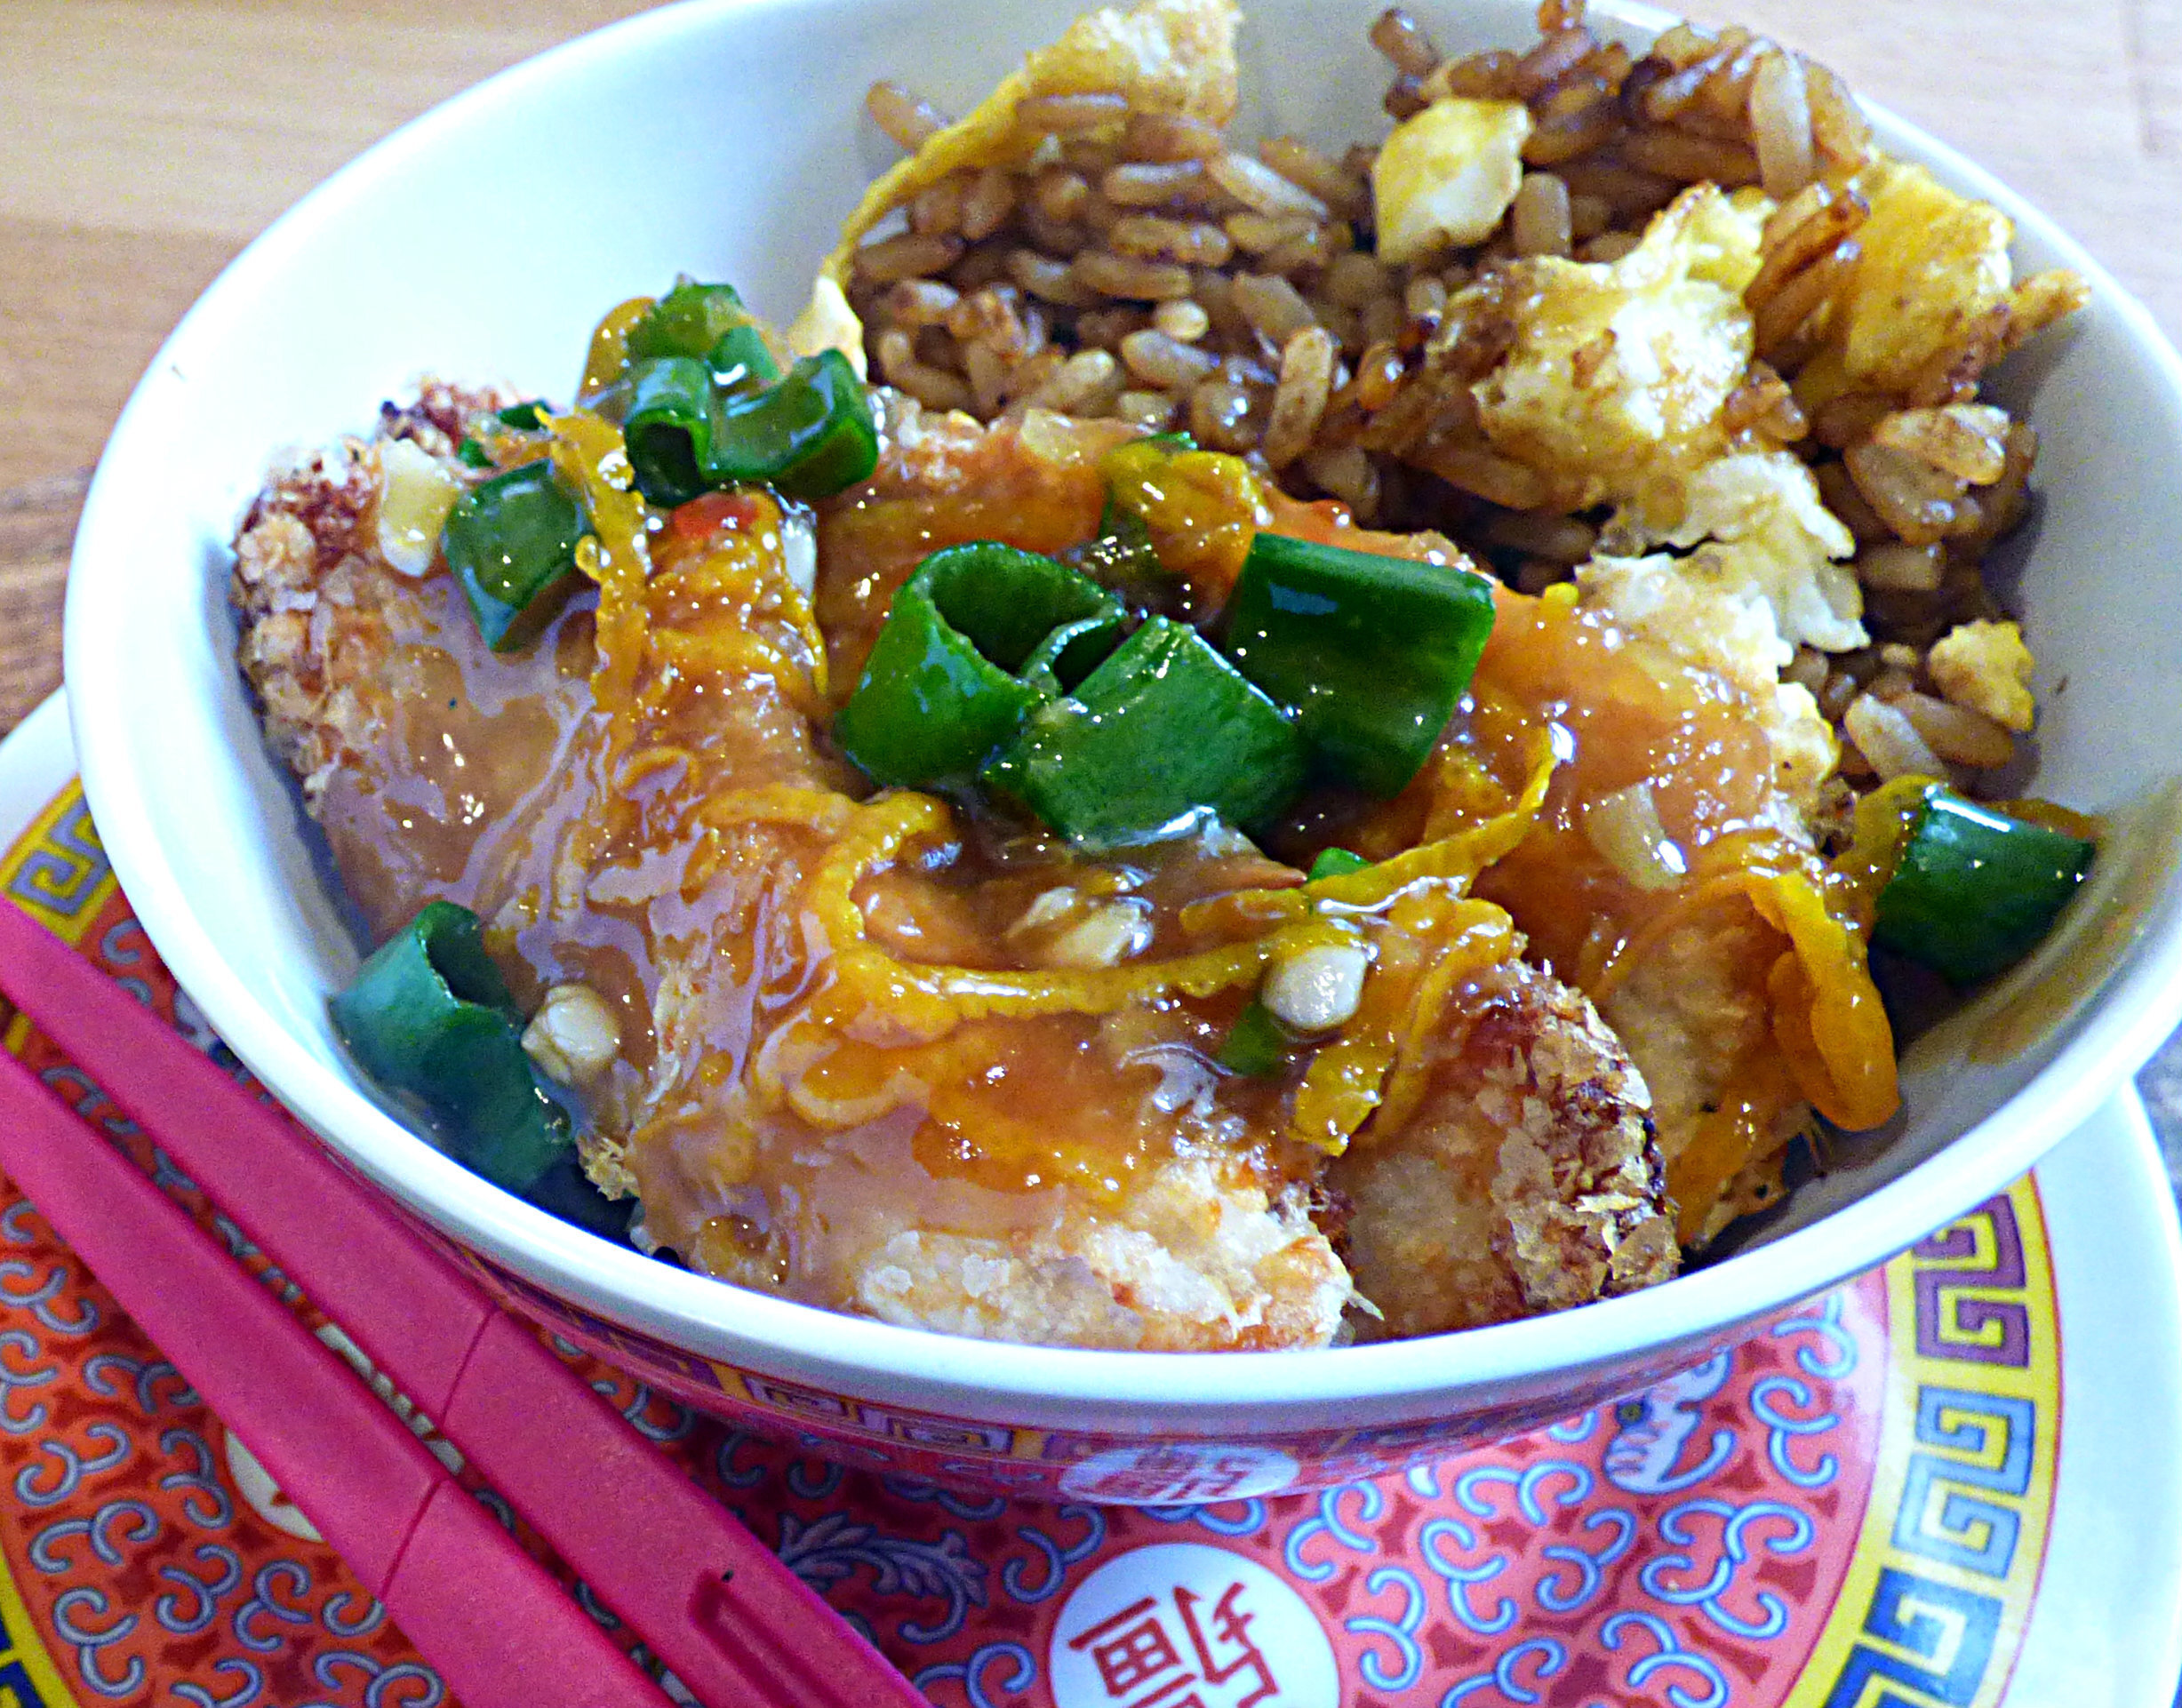 Slimming World Crispy Chinese Orange Chicken and Fried Rice